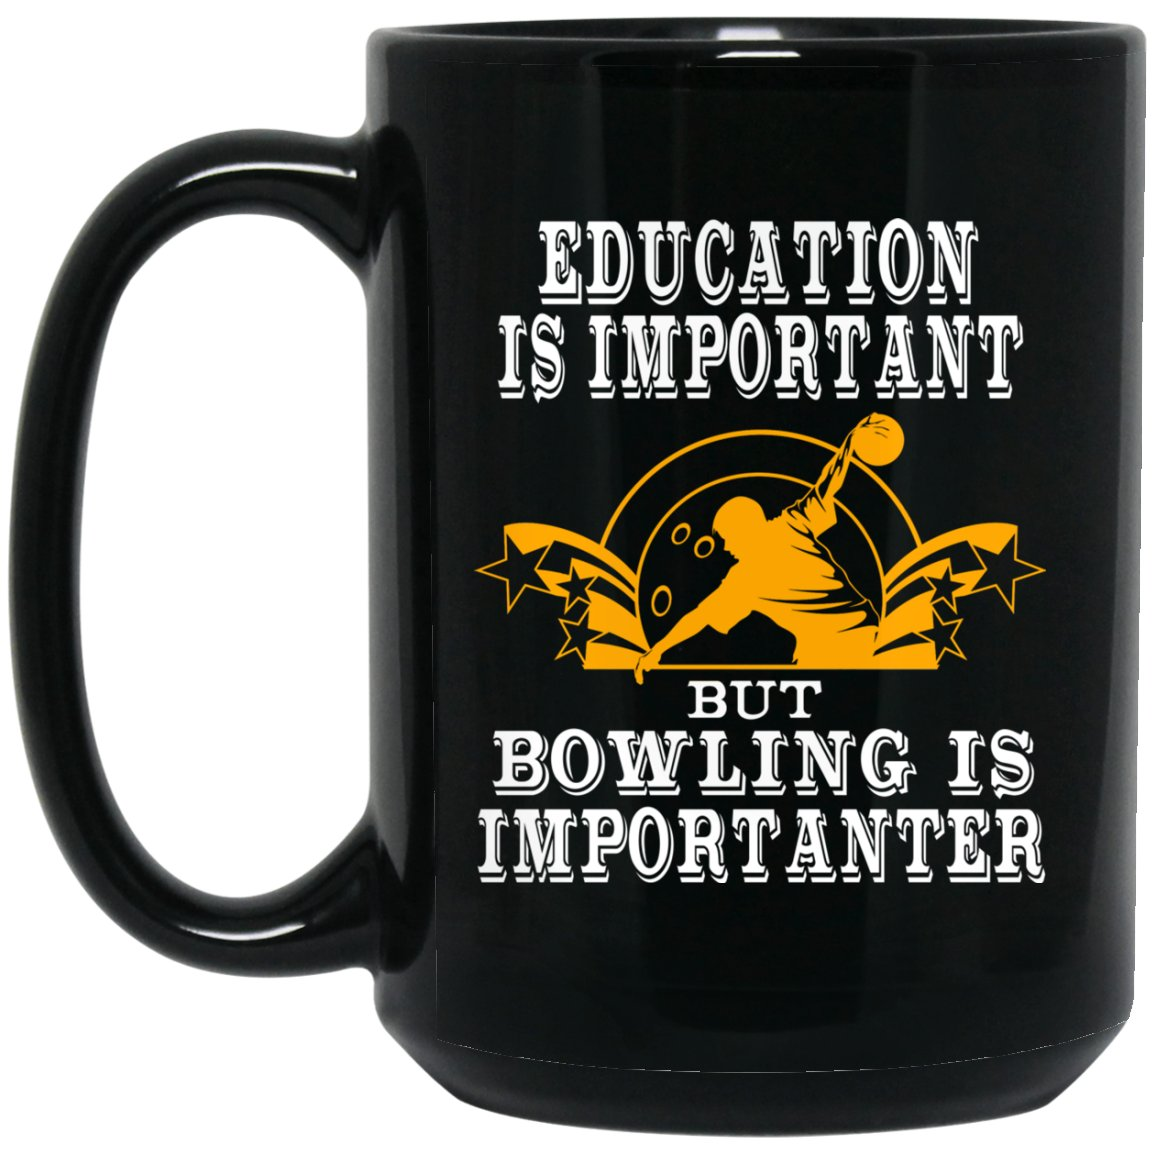 Funny Bowling Mug - Education is Important Large Black Mug